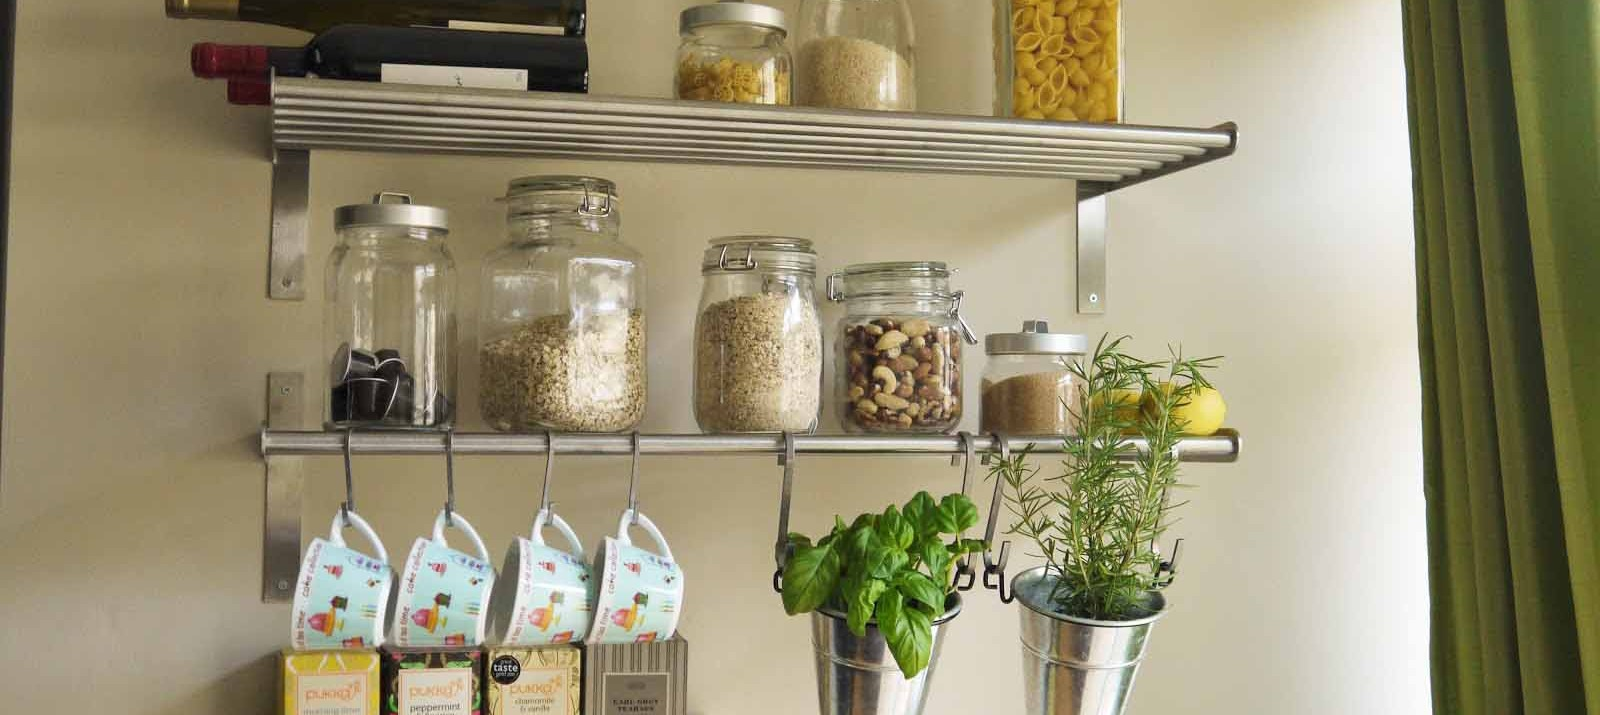 Small Wall Shelf Ideas 7 Smart Ways To Save A Ton Of Space In Your Small Kitchen